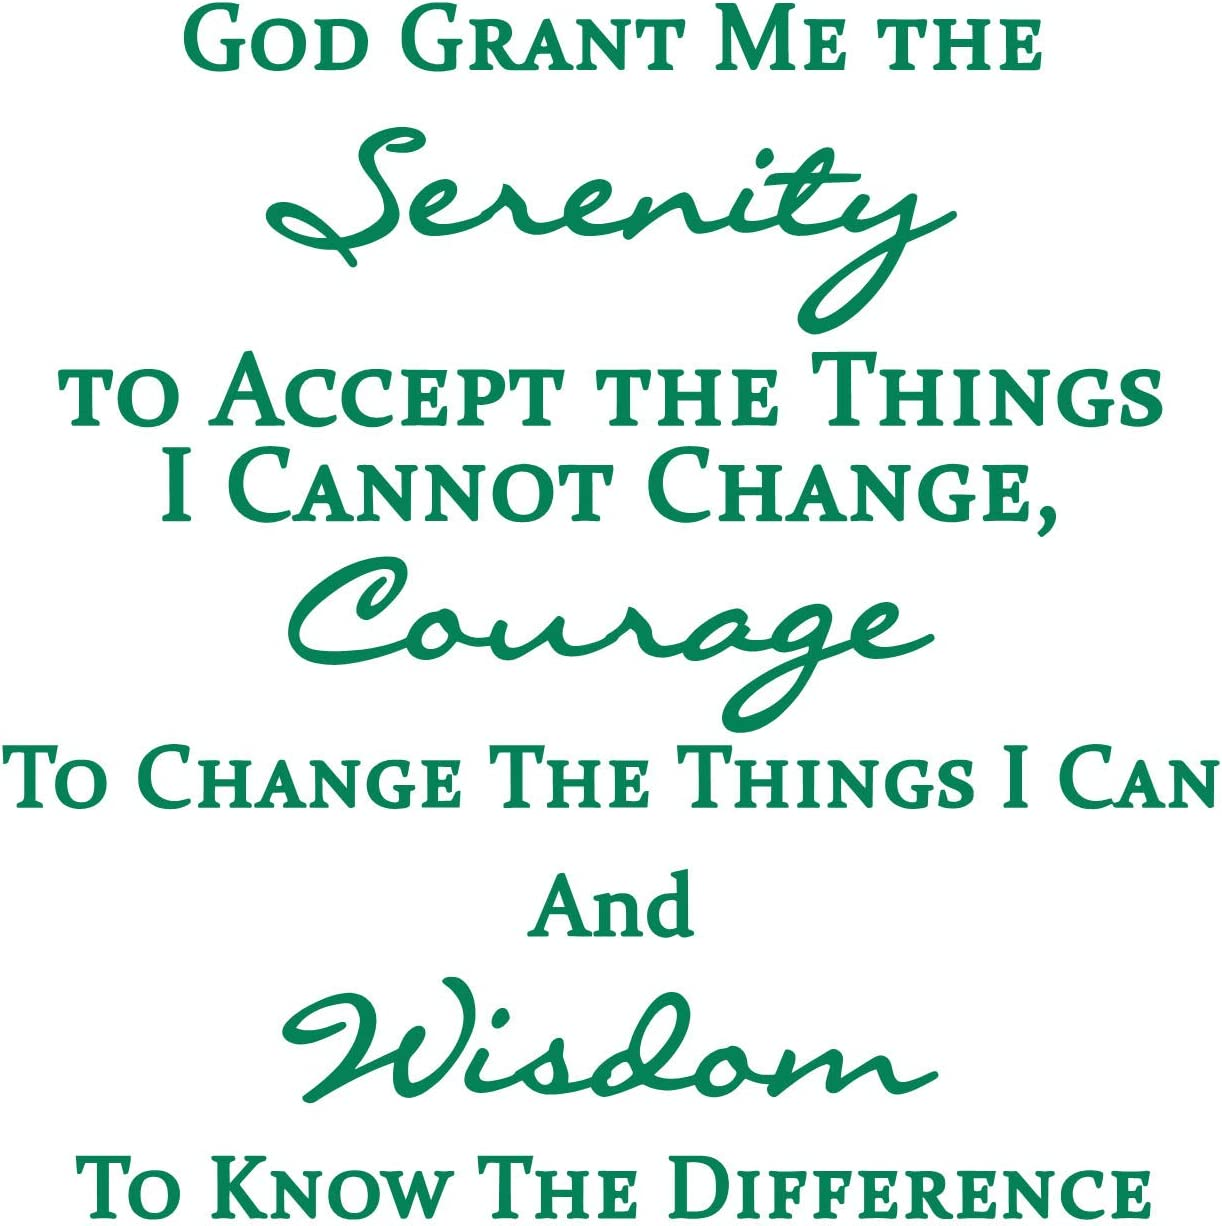 A Vinyl Wall Sticker Displaying God Grant Me The Serenity - Perfect as The Serenity Prayer Gift - Have The Wisdom to Know The Difference - Prayer of Serenity - Green